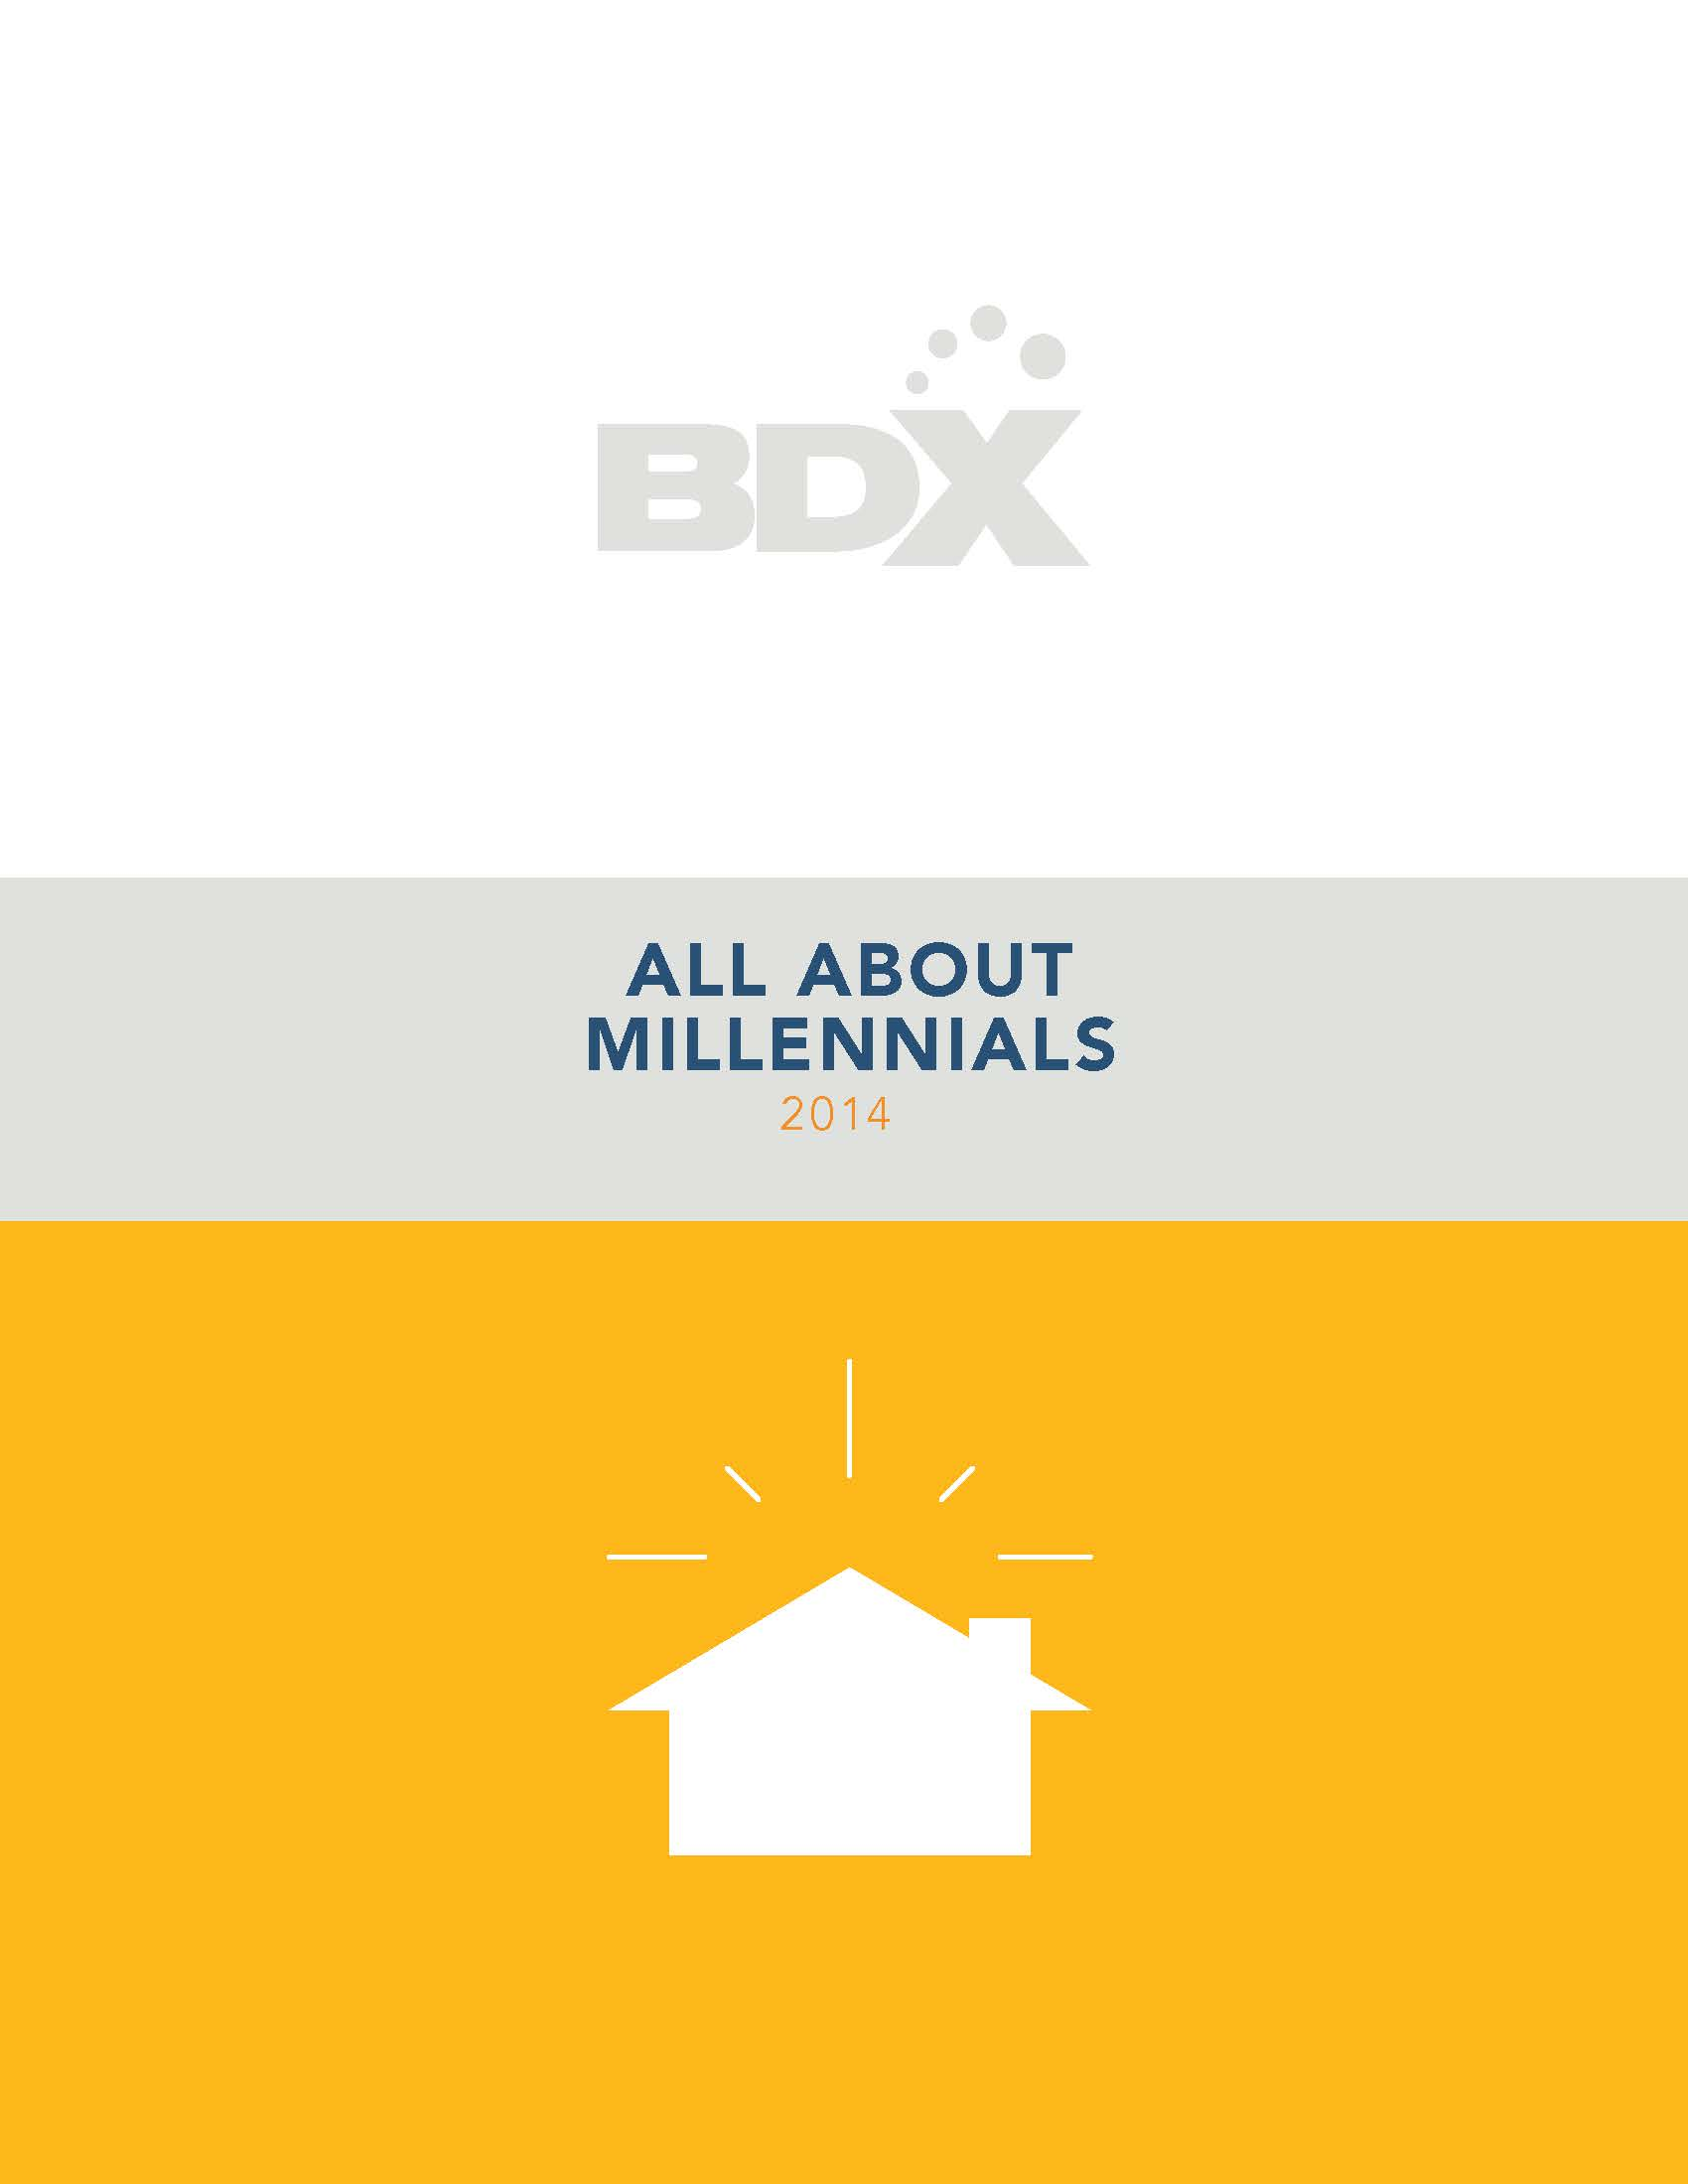 BDX's infographic reveals data about the millennial generation.